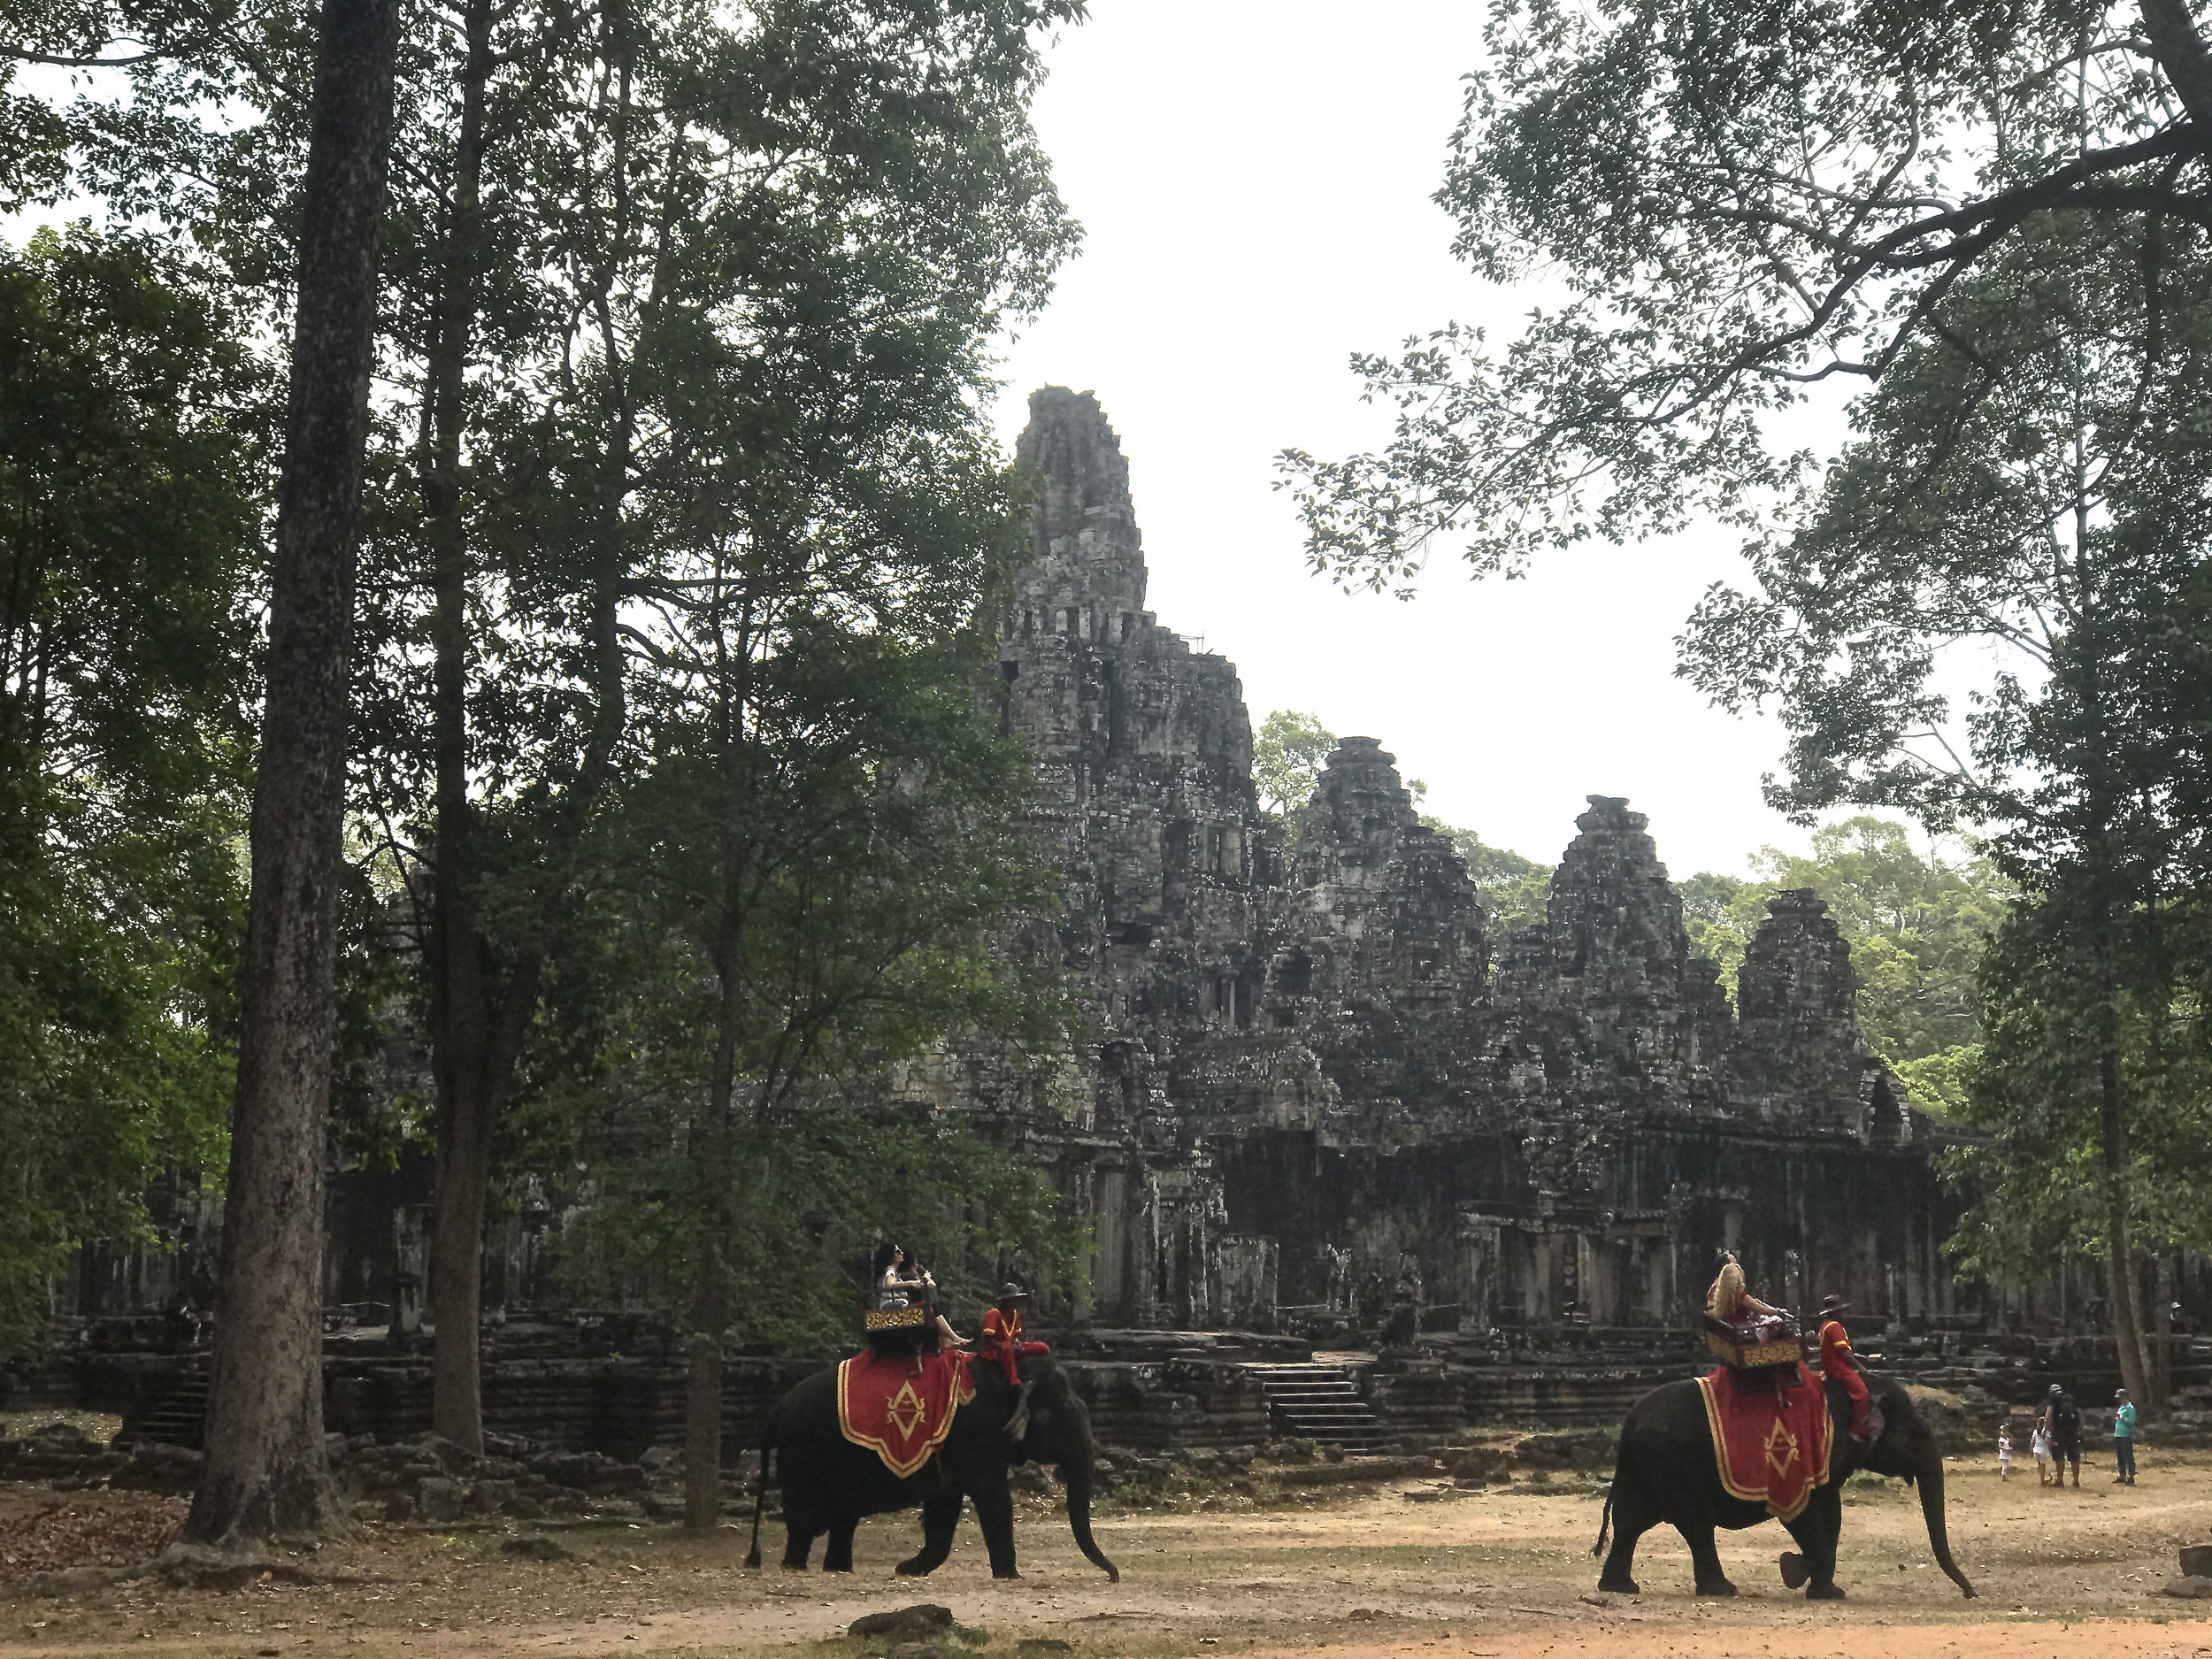 Elephants carry tourists in high heat at Angkor Wat's Bayon Temple in Cambodia. An elephant that  died of heatstroke  under these conditions in 2016 sparked an international outcry, including a petition to ban elephant riding in Cambodia that was signed by tens of thousands. This photo was taken in 2017.